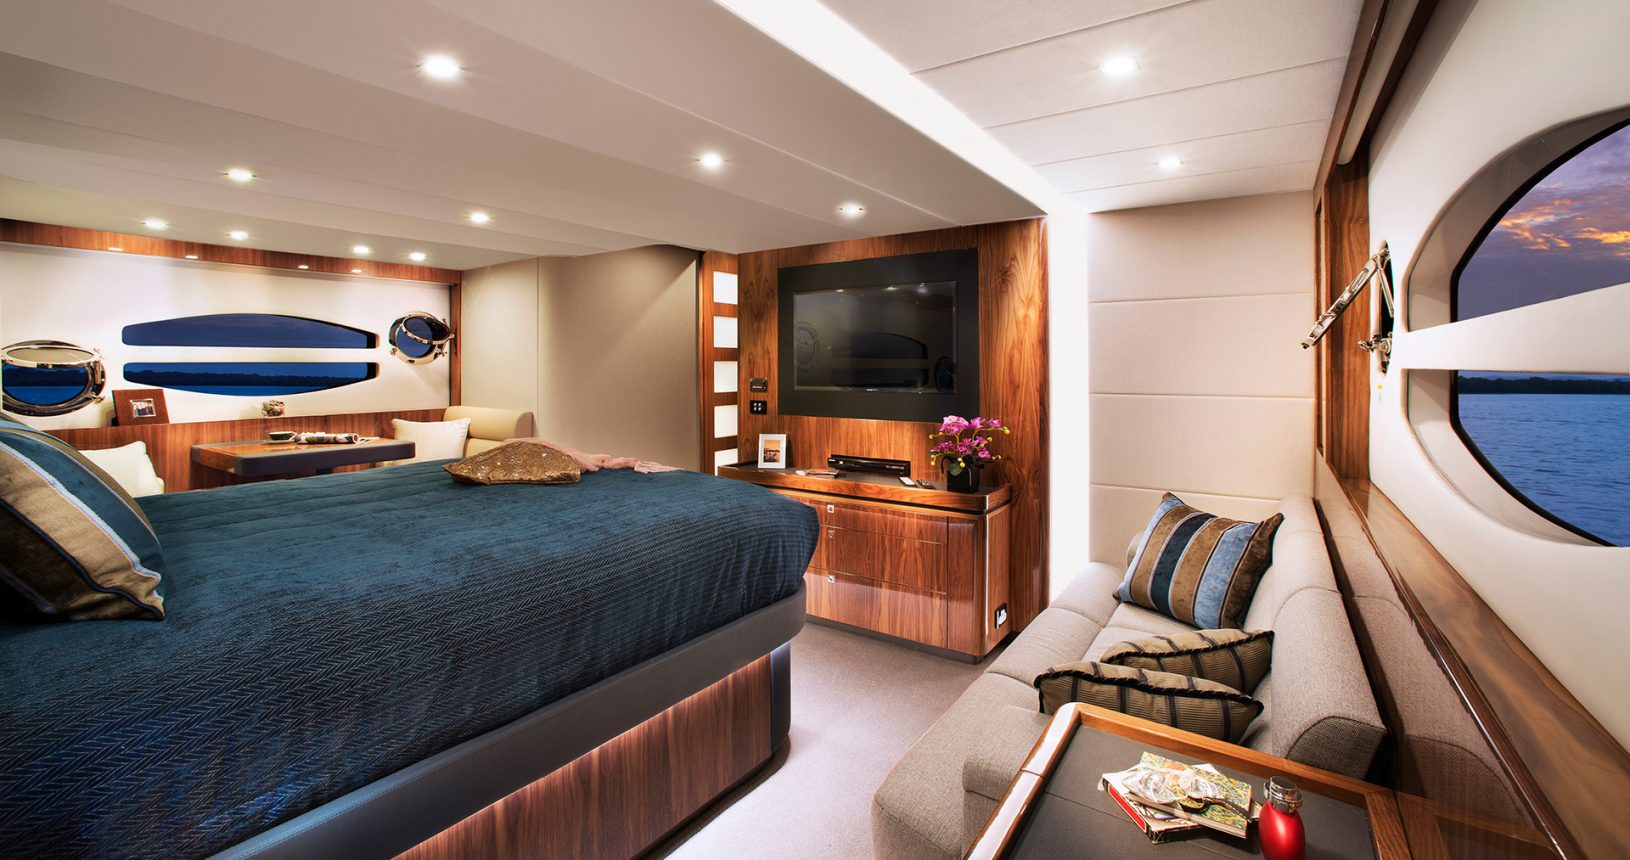 Riviera 6000 sports yacht for sale - Master stateroom